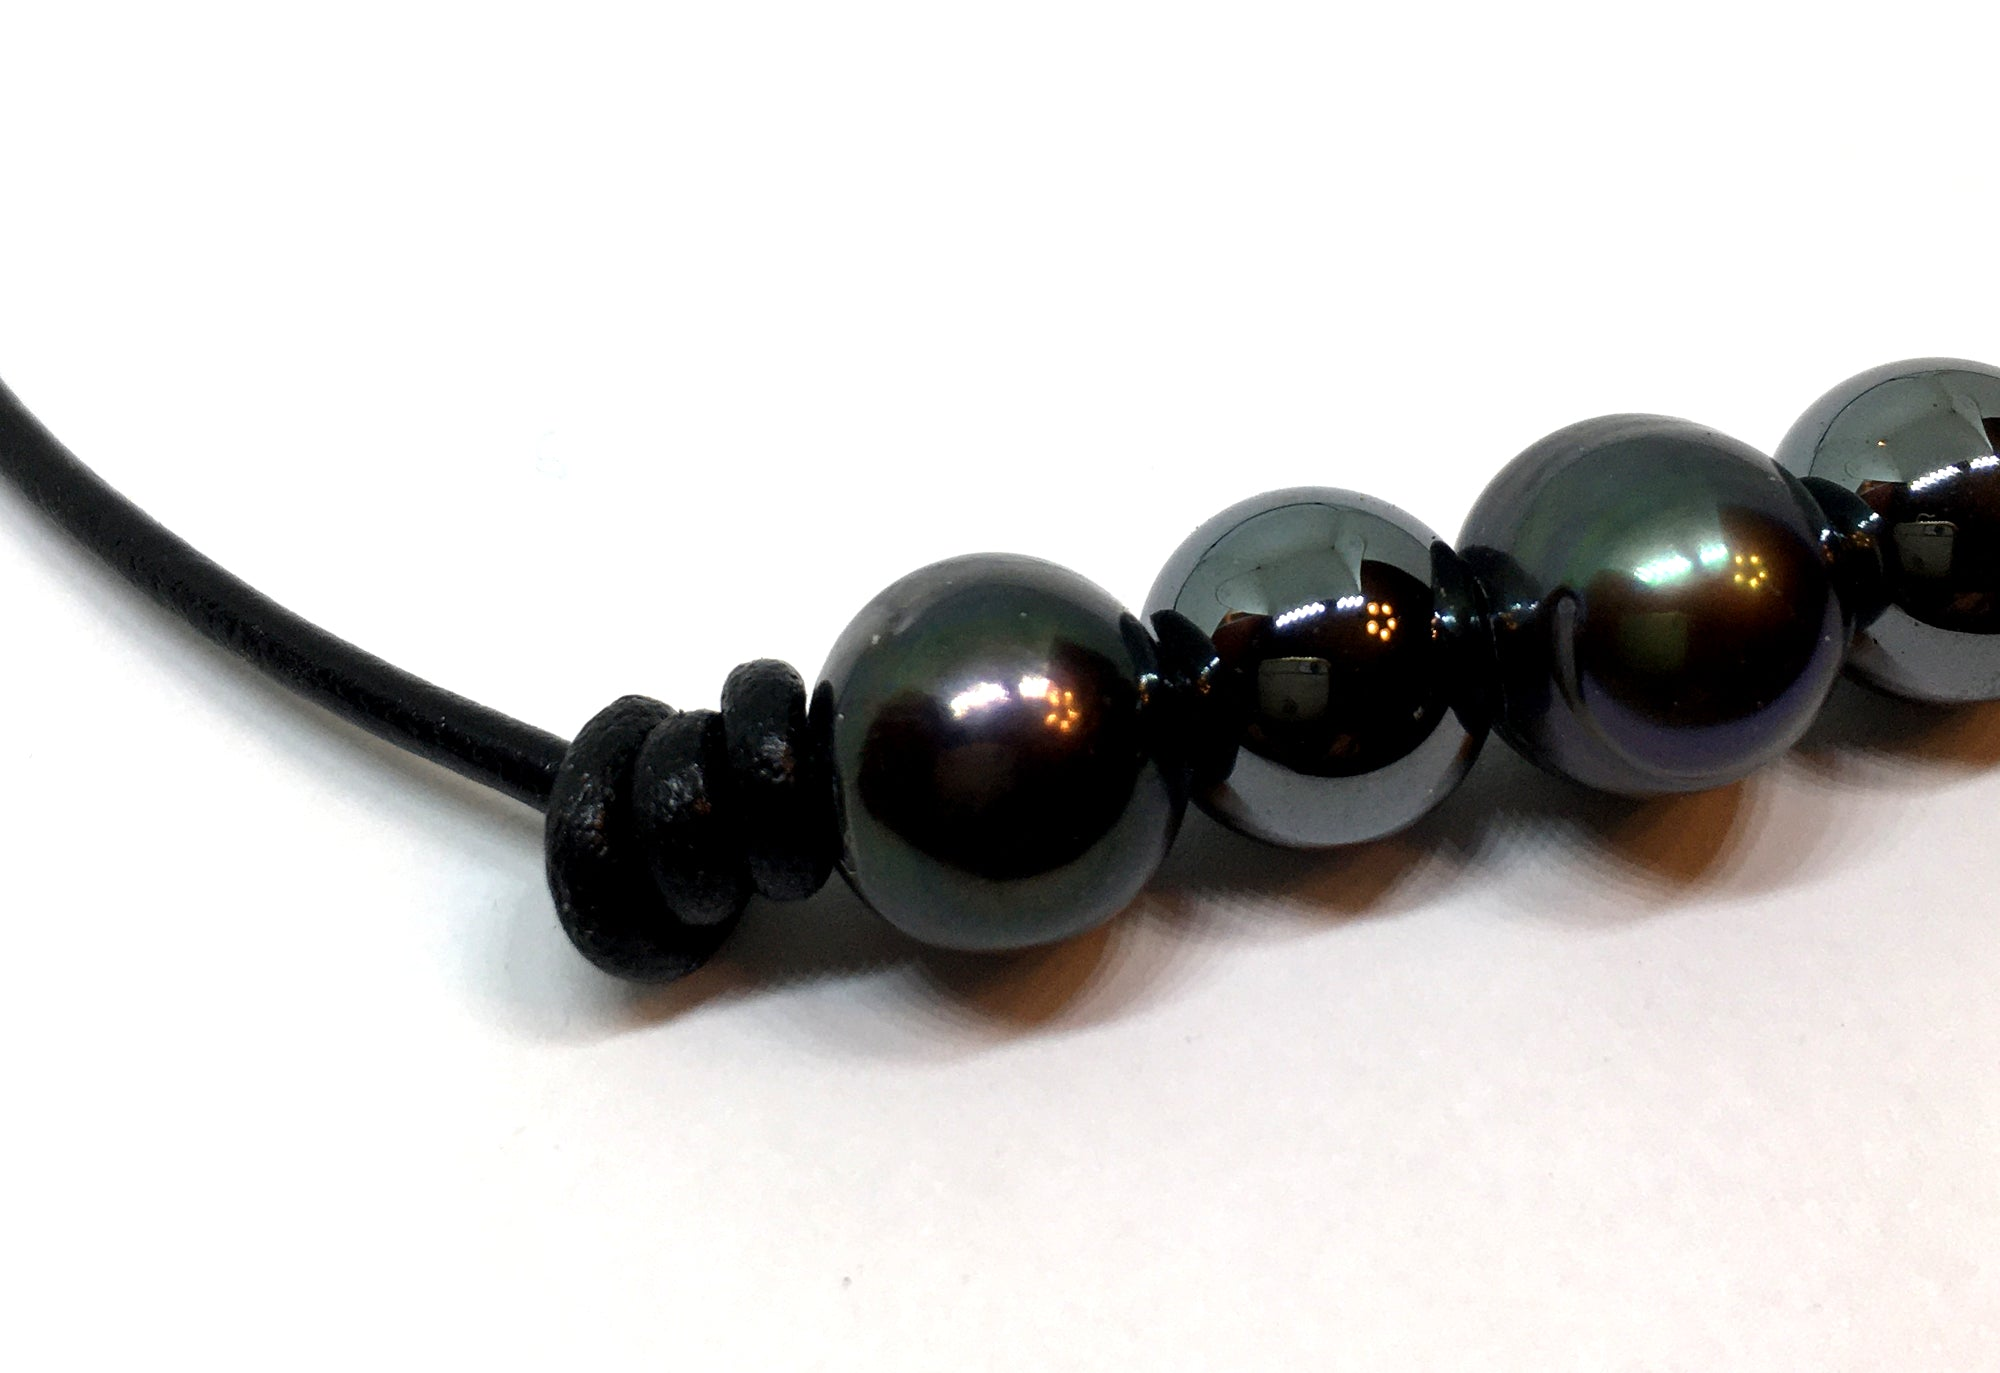 Black Peacock Pearl and Hematite Adjustable Knotted Leather Necklace for Men and Women